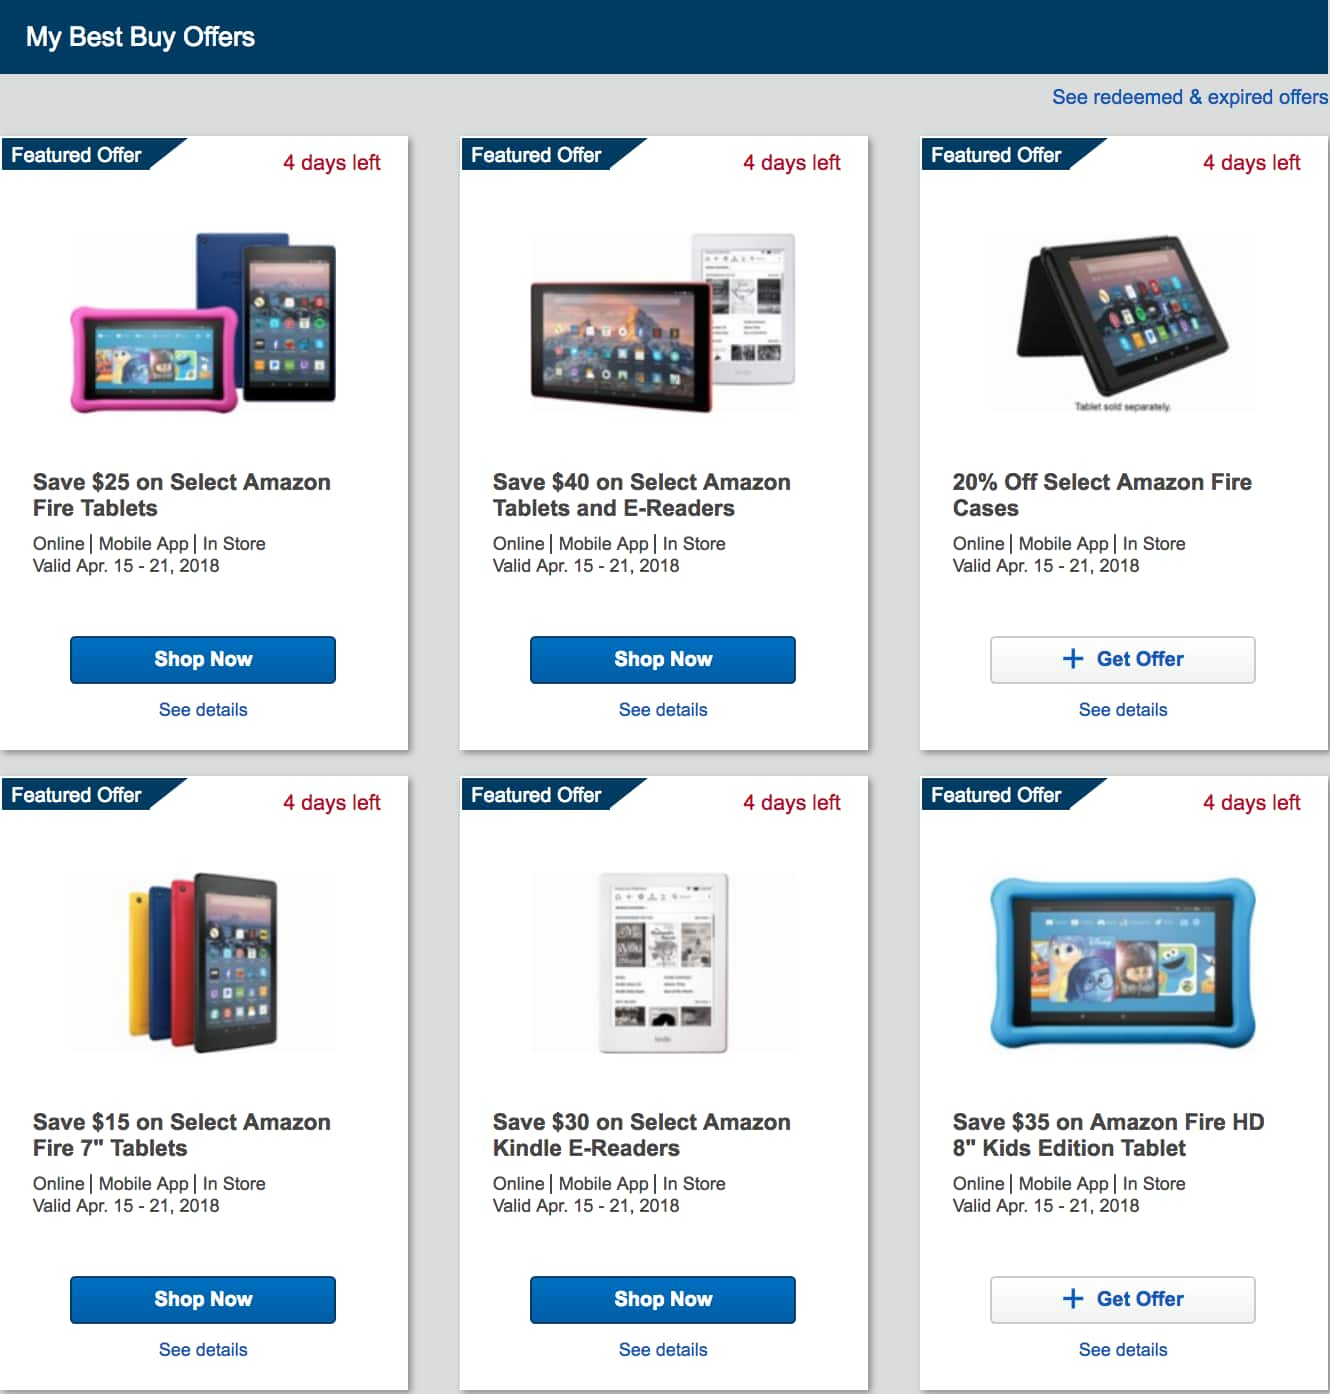 Amazon Fire Tablets Fire 7 $35, Kindle $50, Paperwhite $80 for My Best Buy Members YMMV